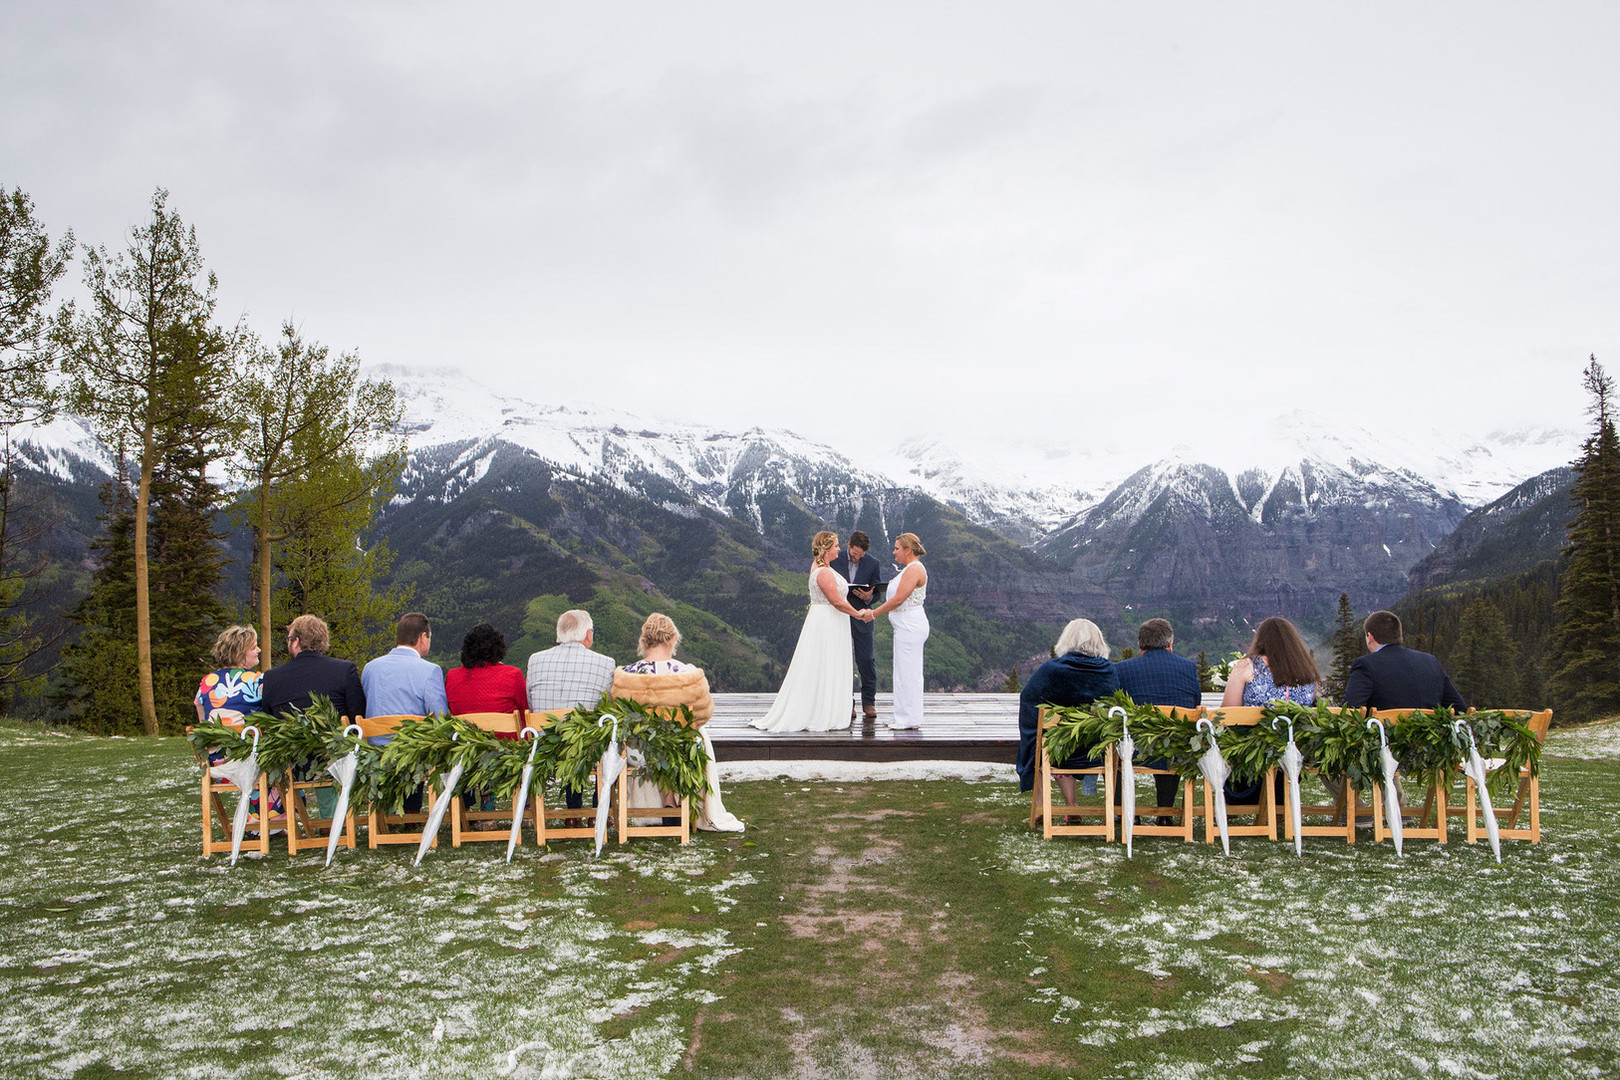 Ceremony of Kendall and Elizabeth - real